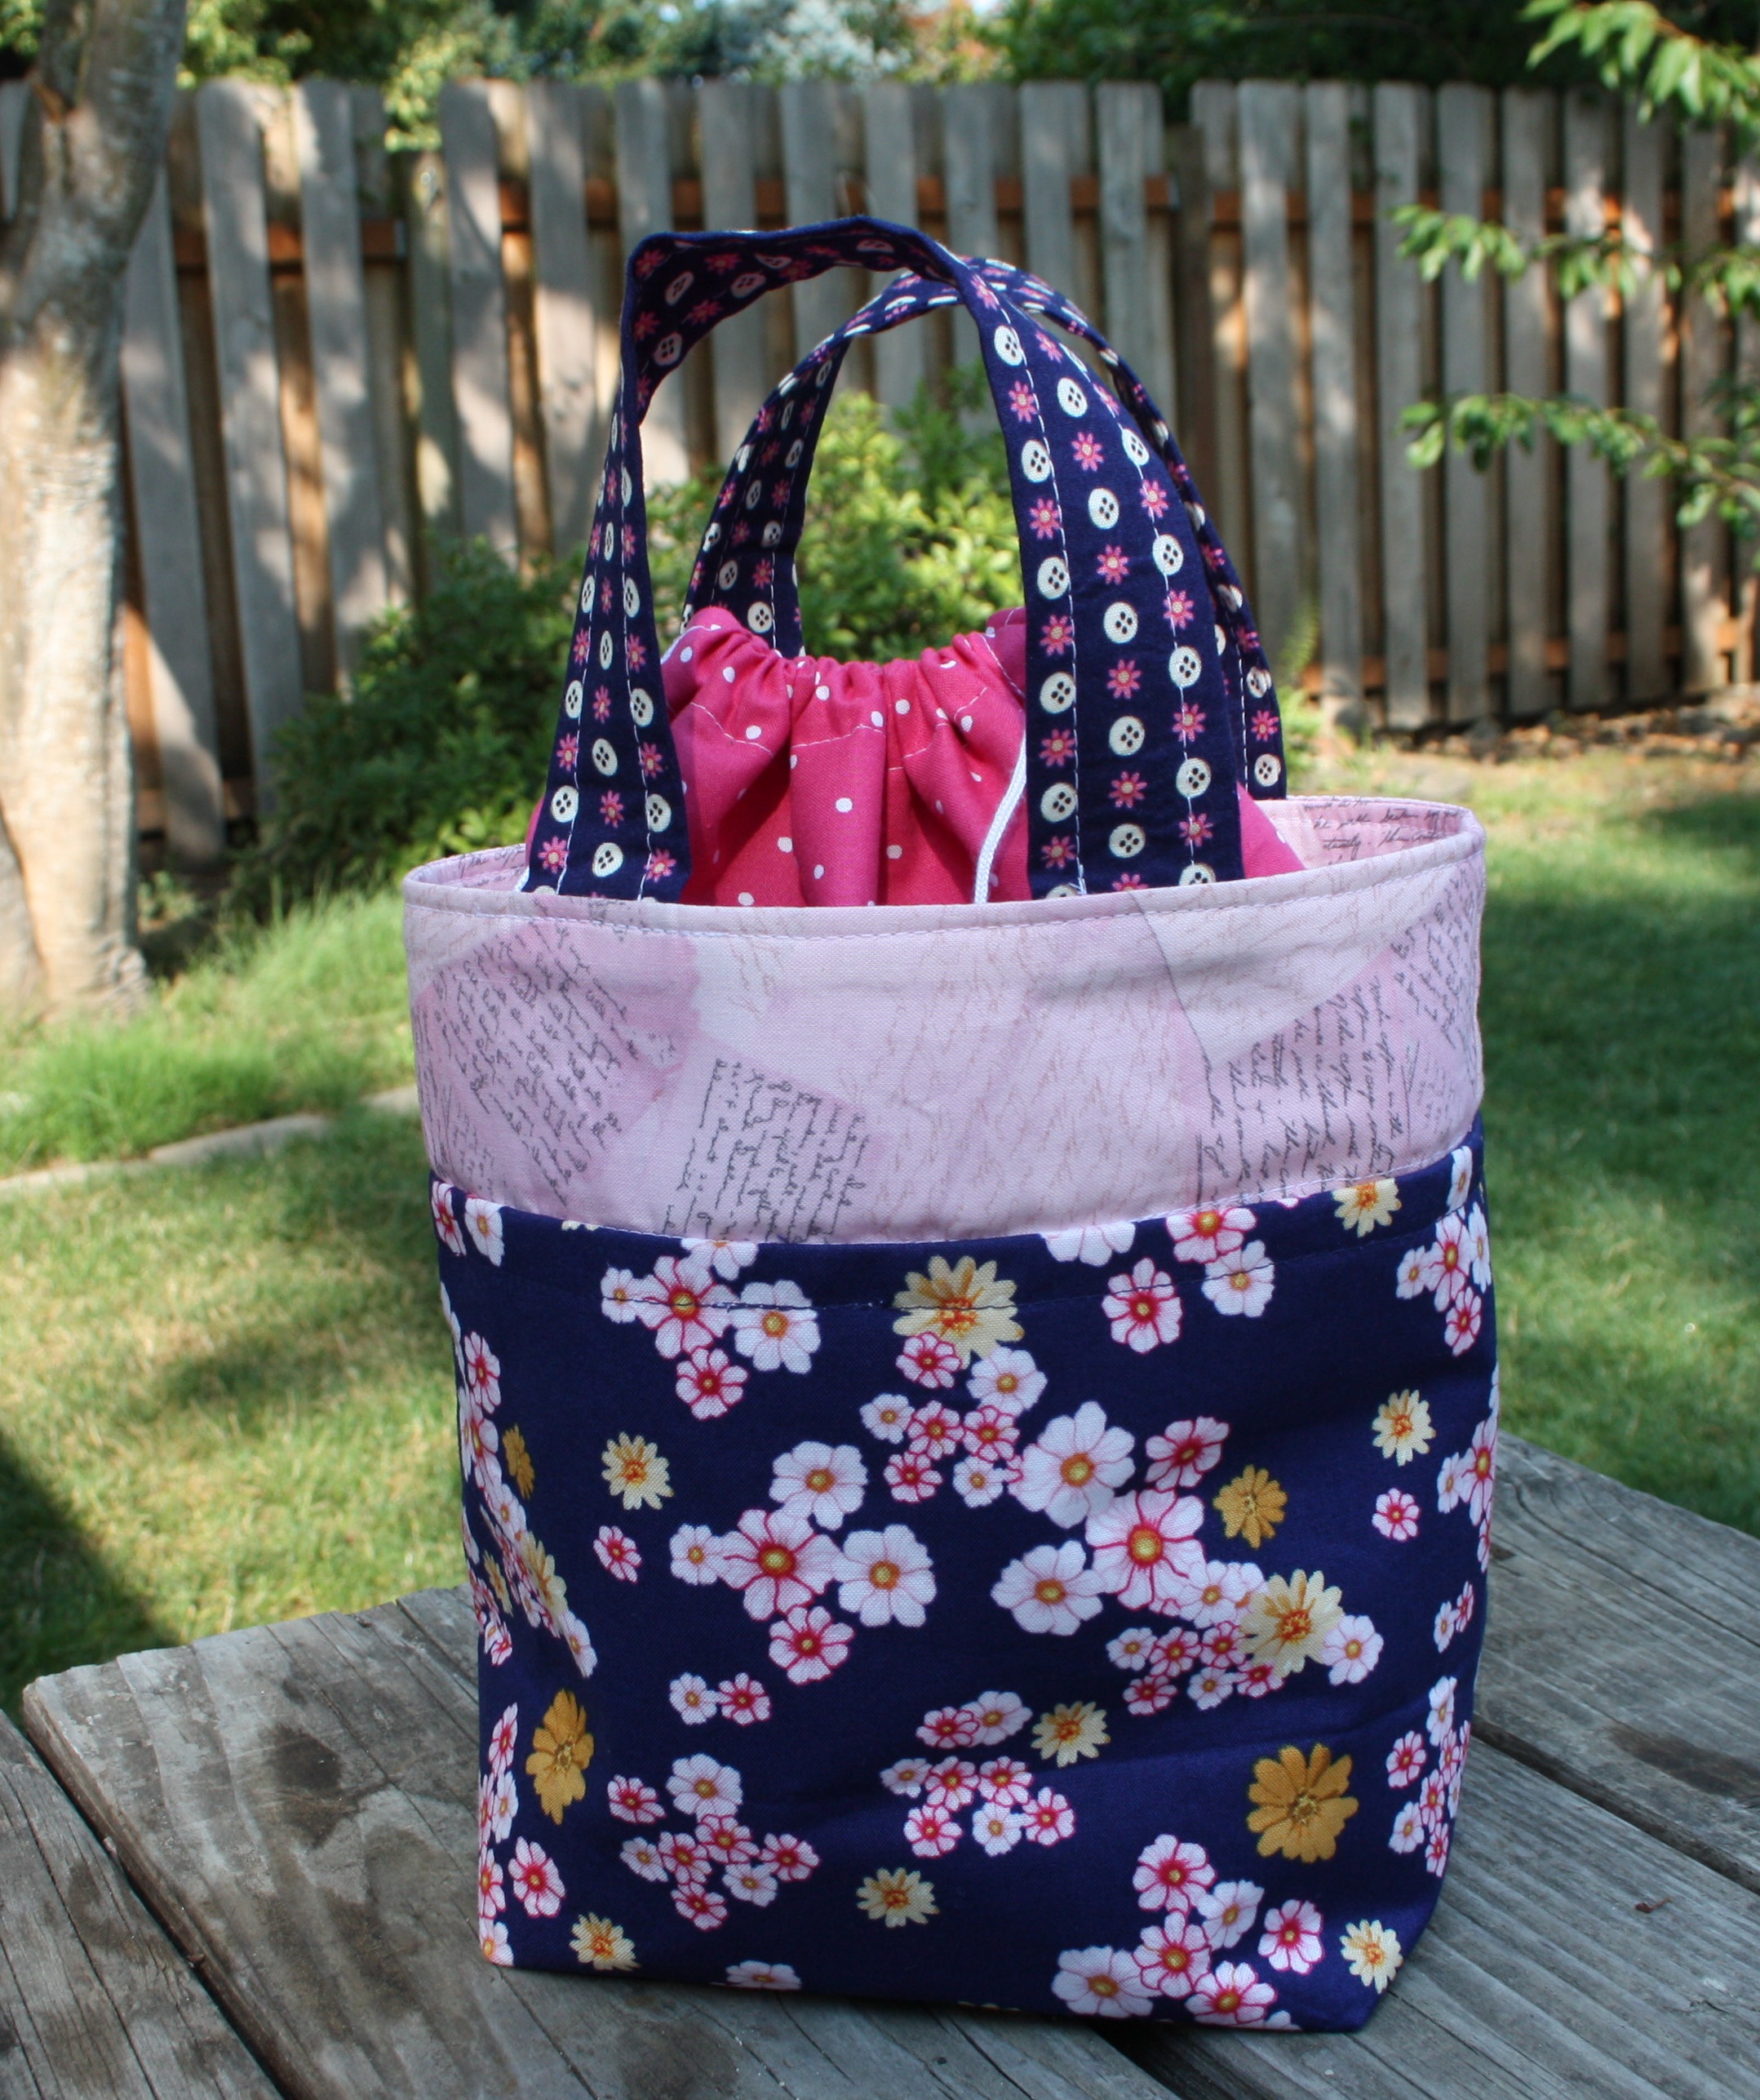 Lunch Bag Tutorial - Avery Lane Sewing